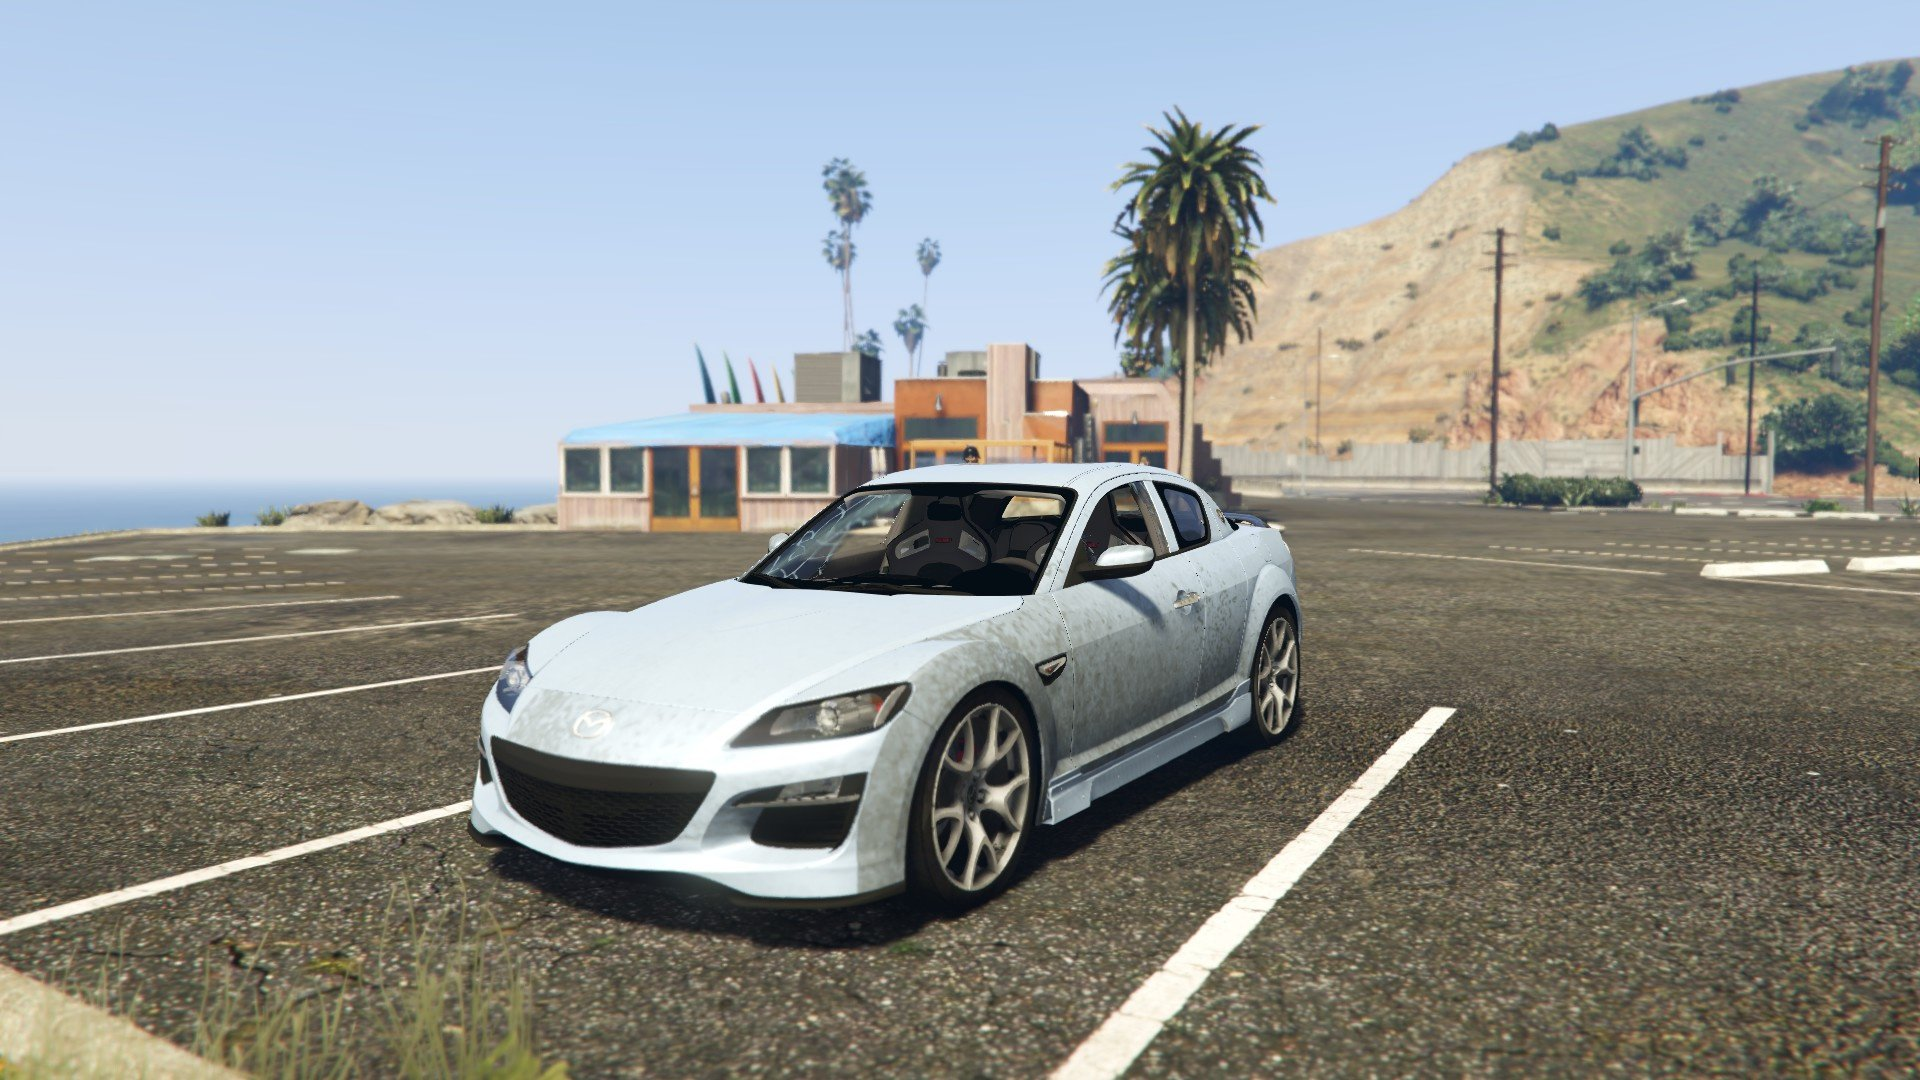 mazda rx8 spirit r 2012 tuning v1 5 gta 5. Black Bedroom Furniture Sets. Home Design Ideas